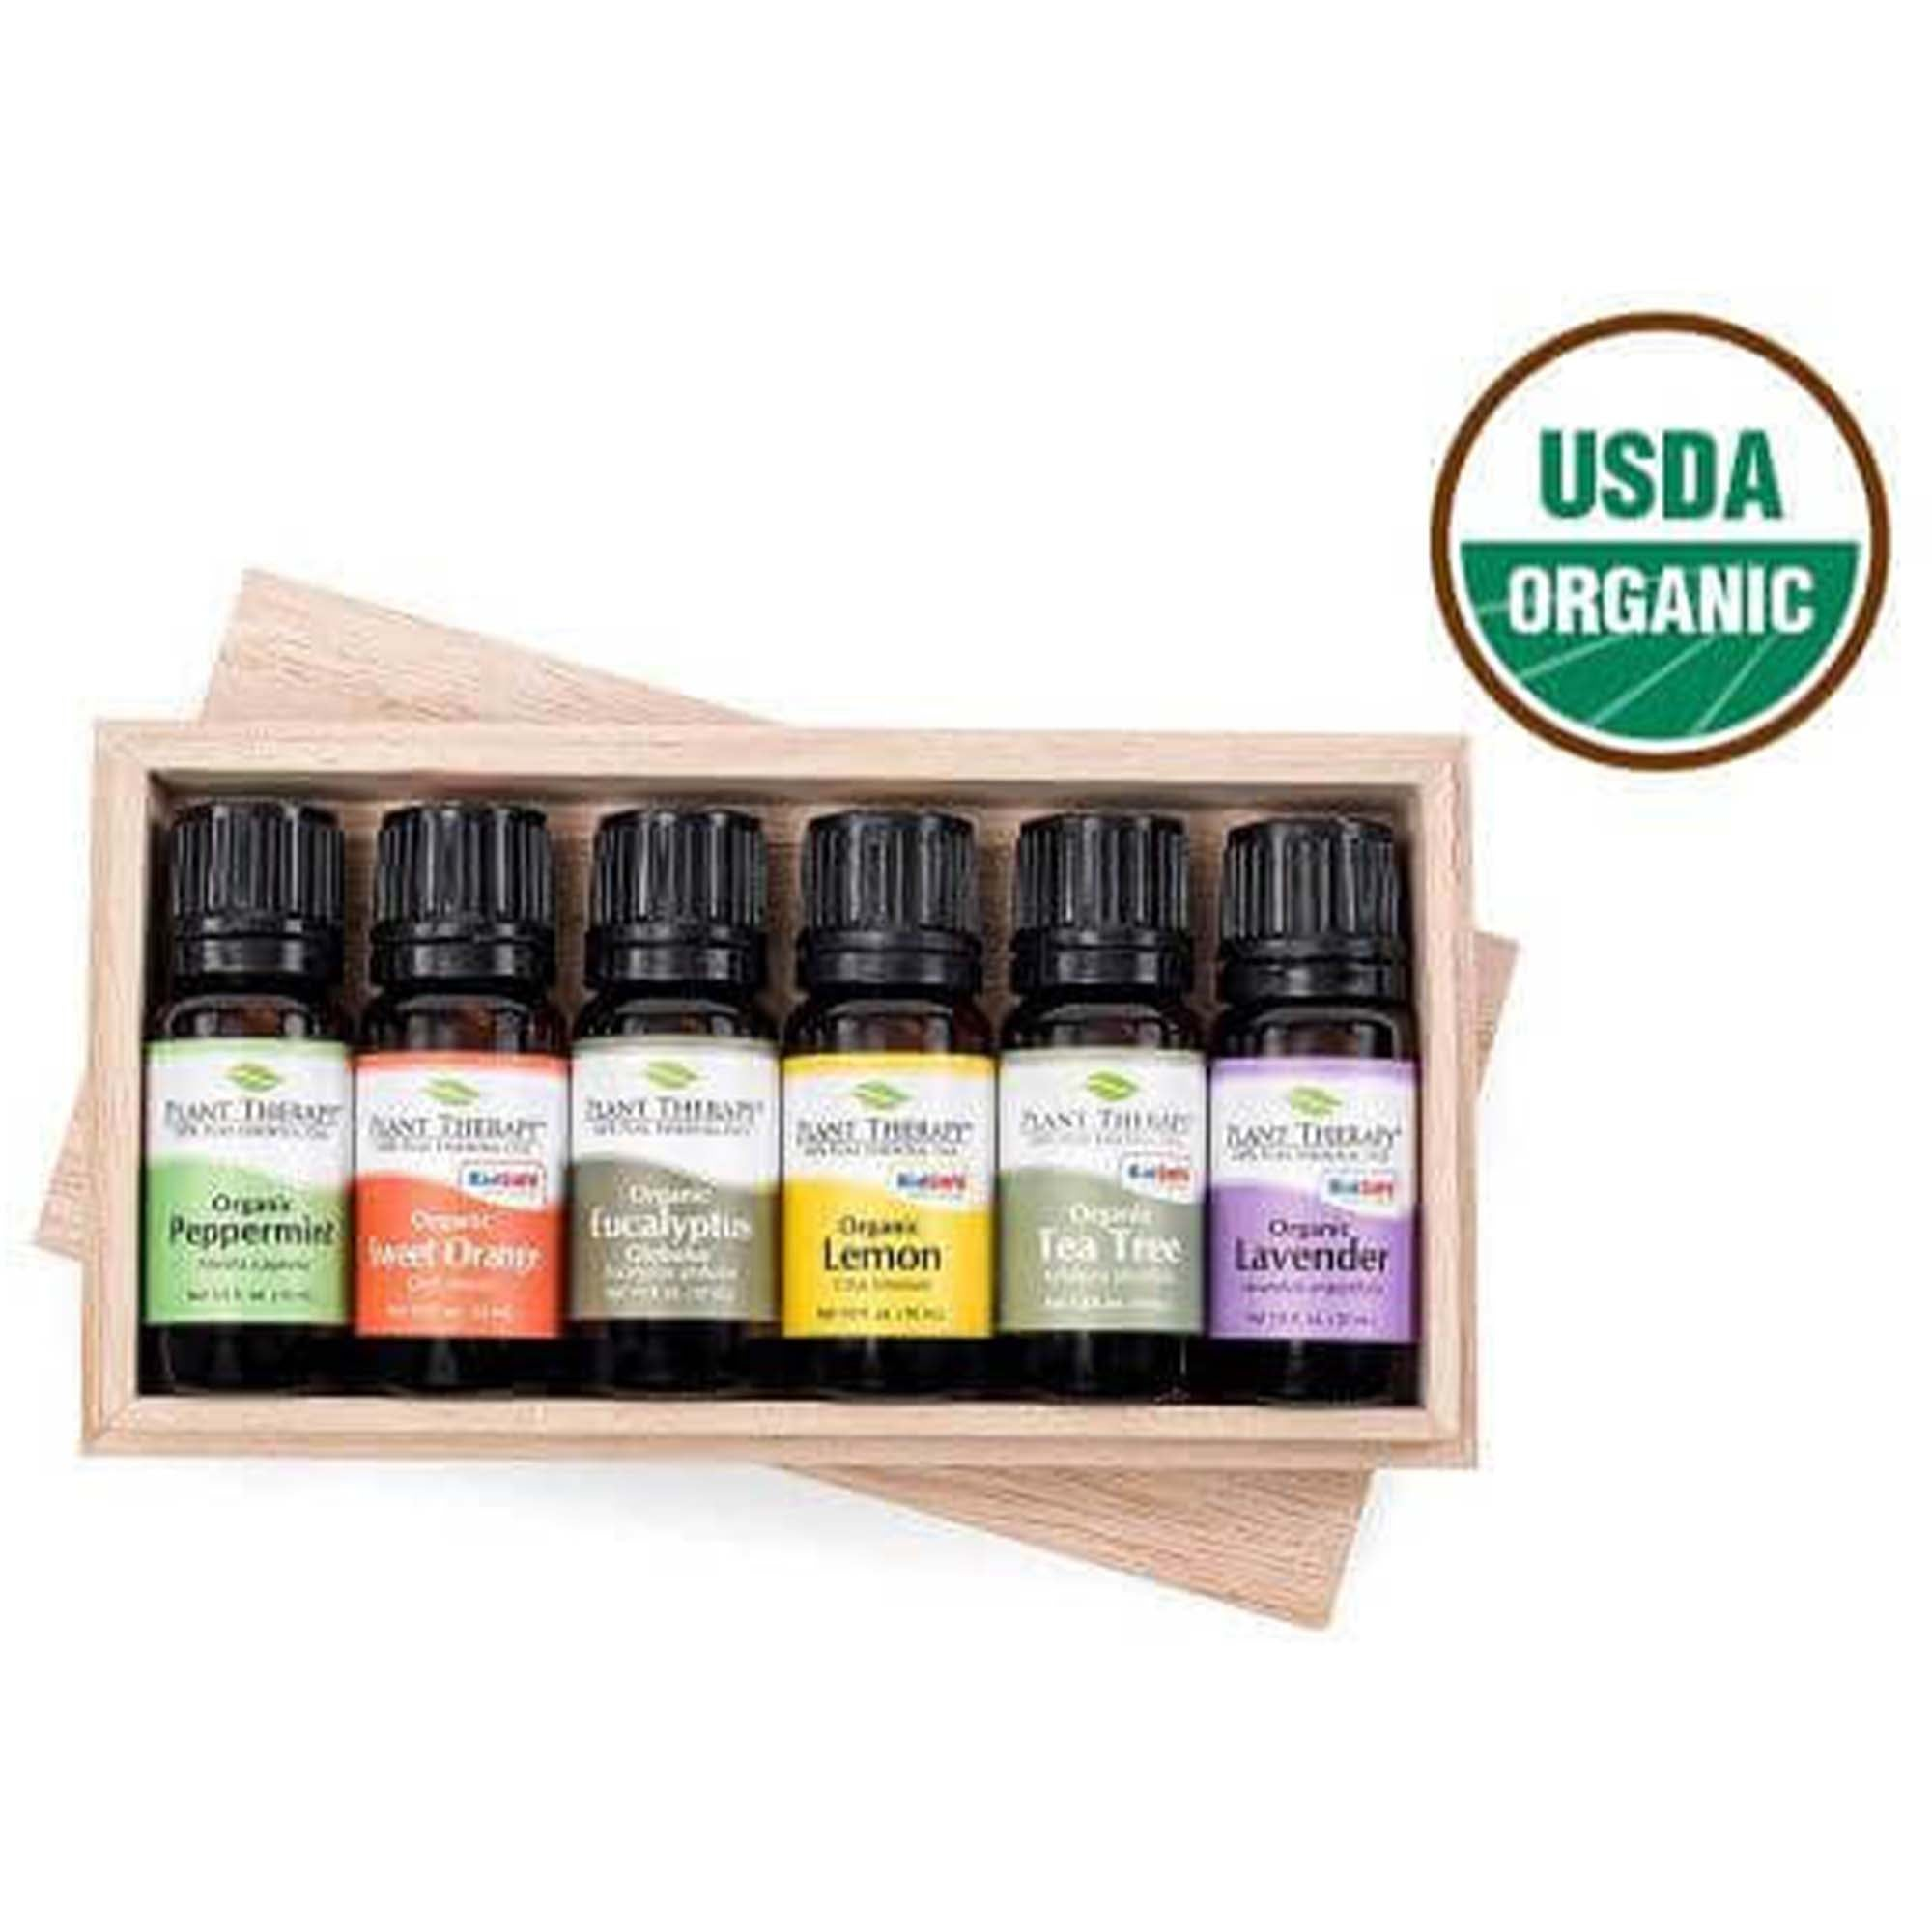 6, 10 mL essential oils in black bottles with black lids in wooden box, usda organic seal